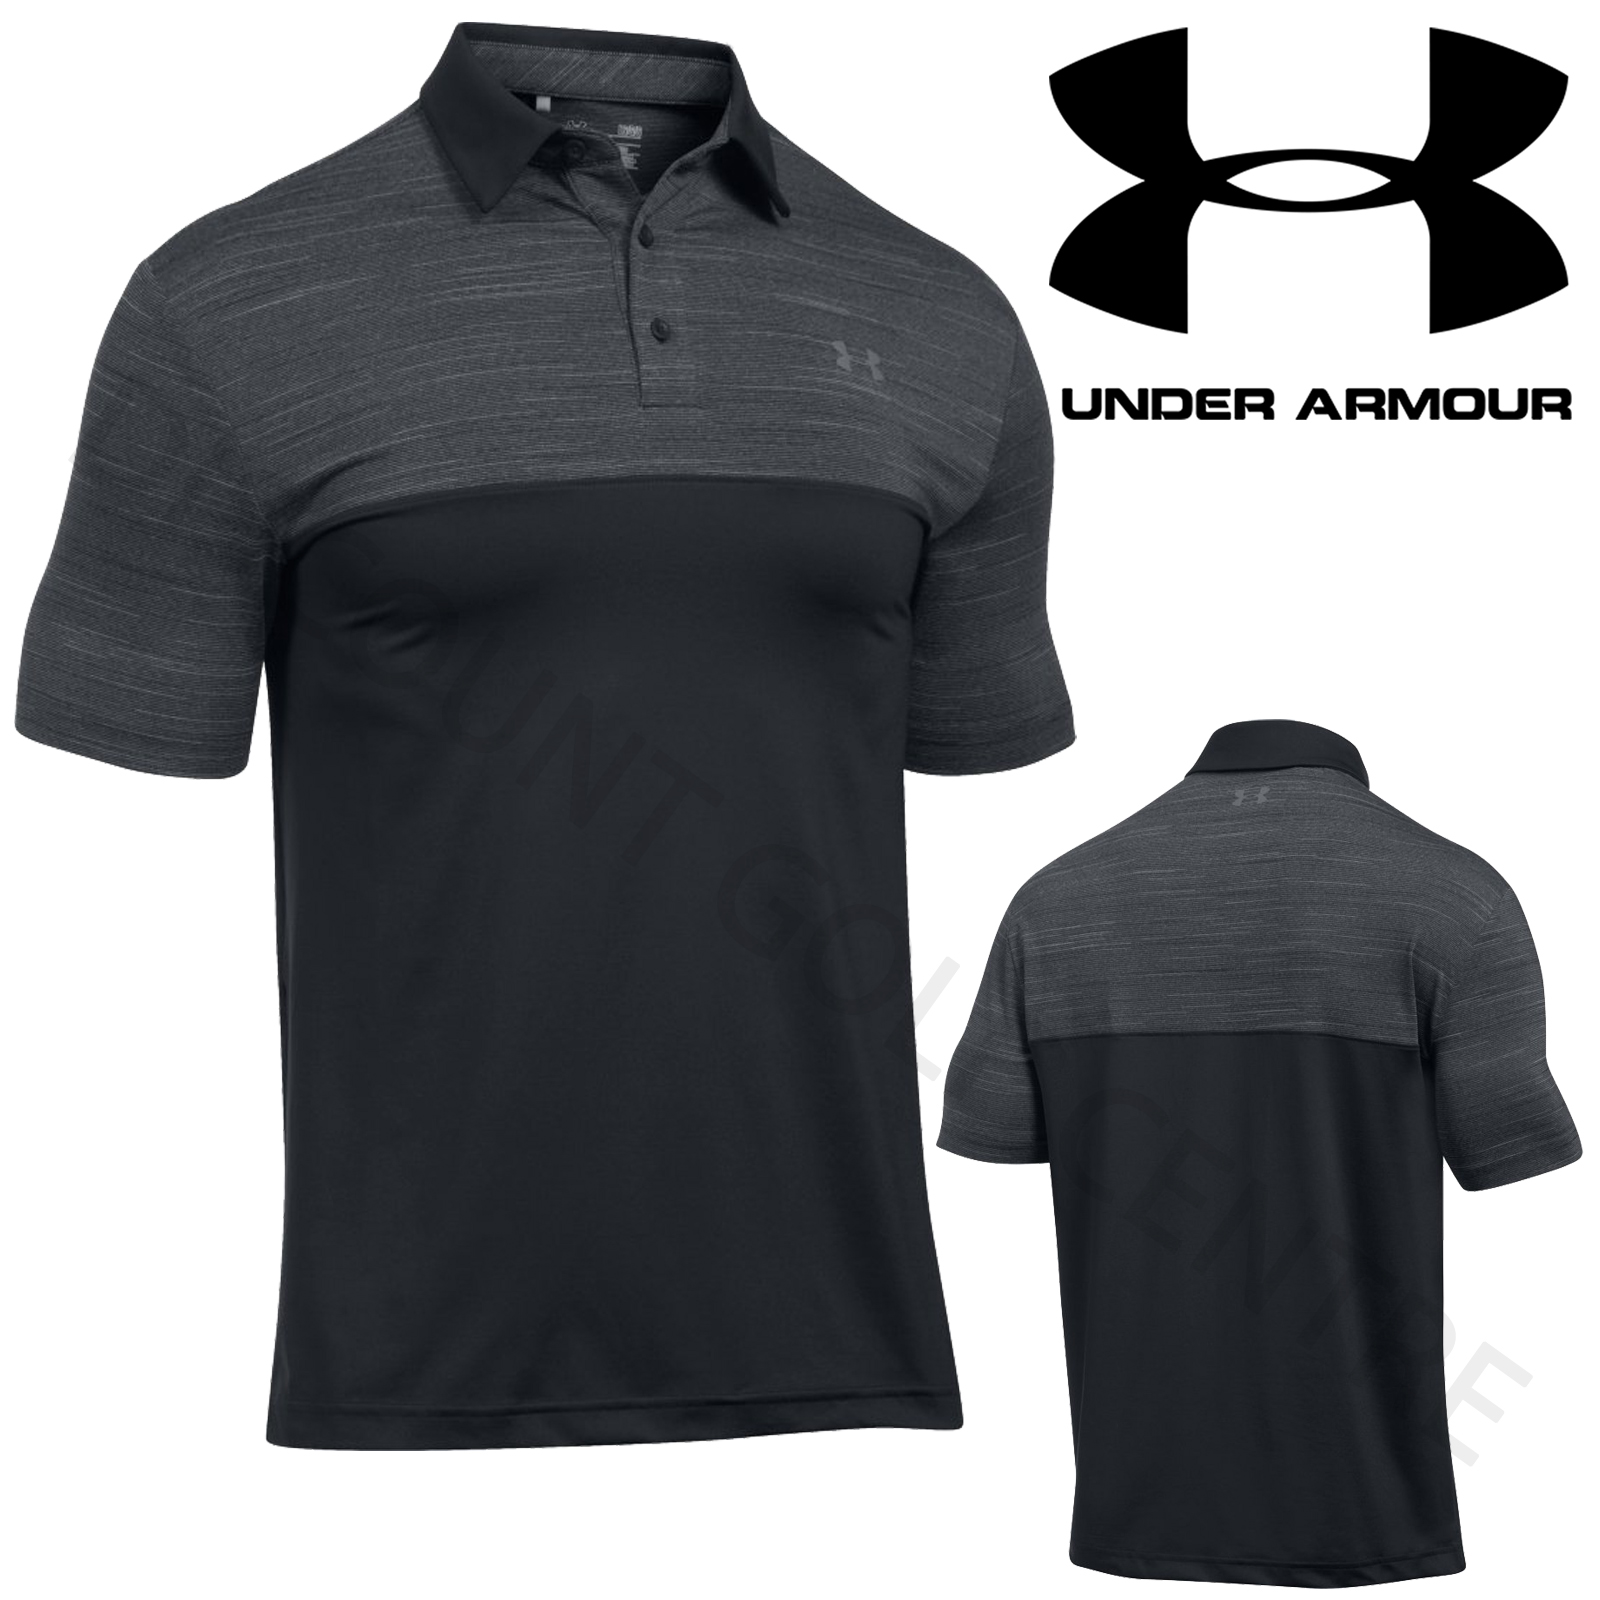 Management of under armour